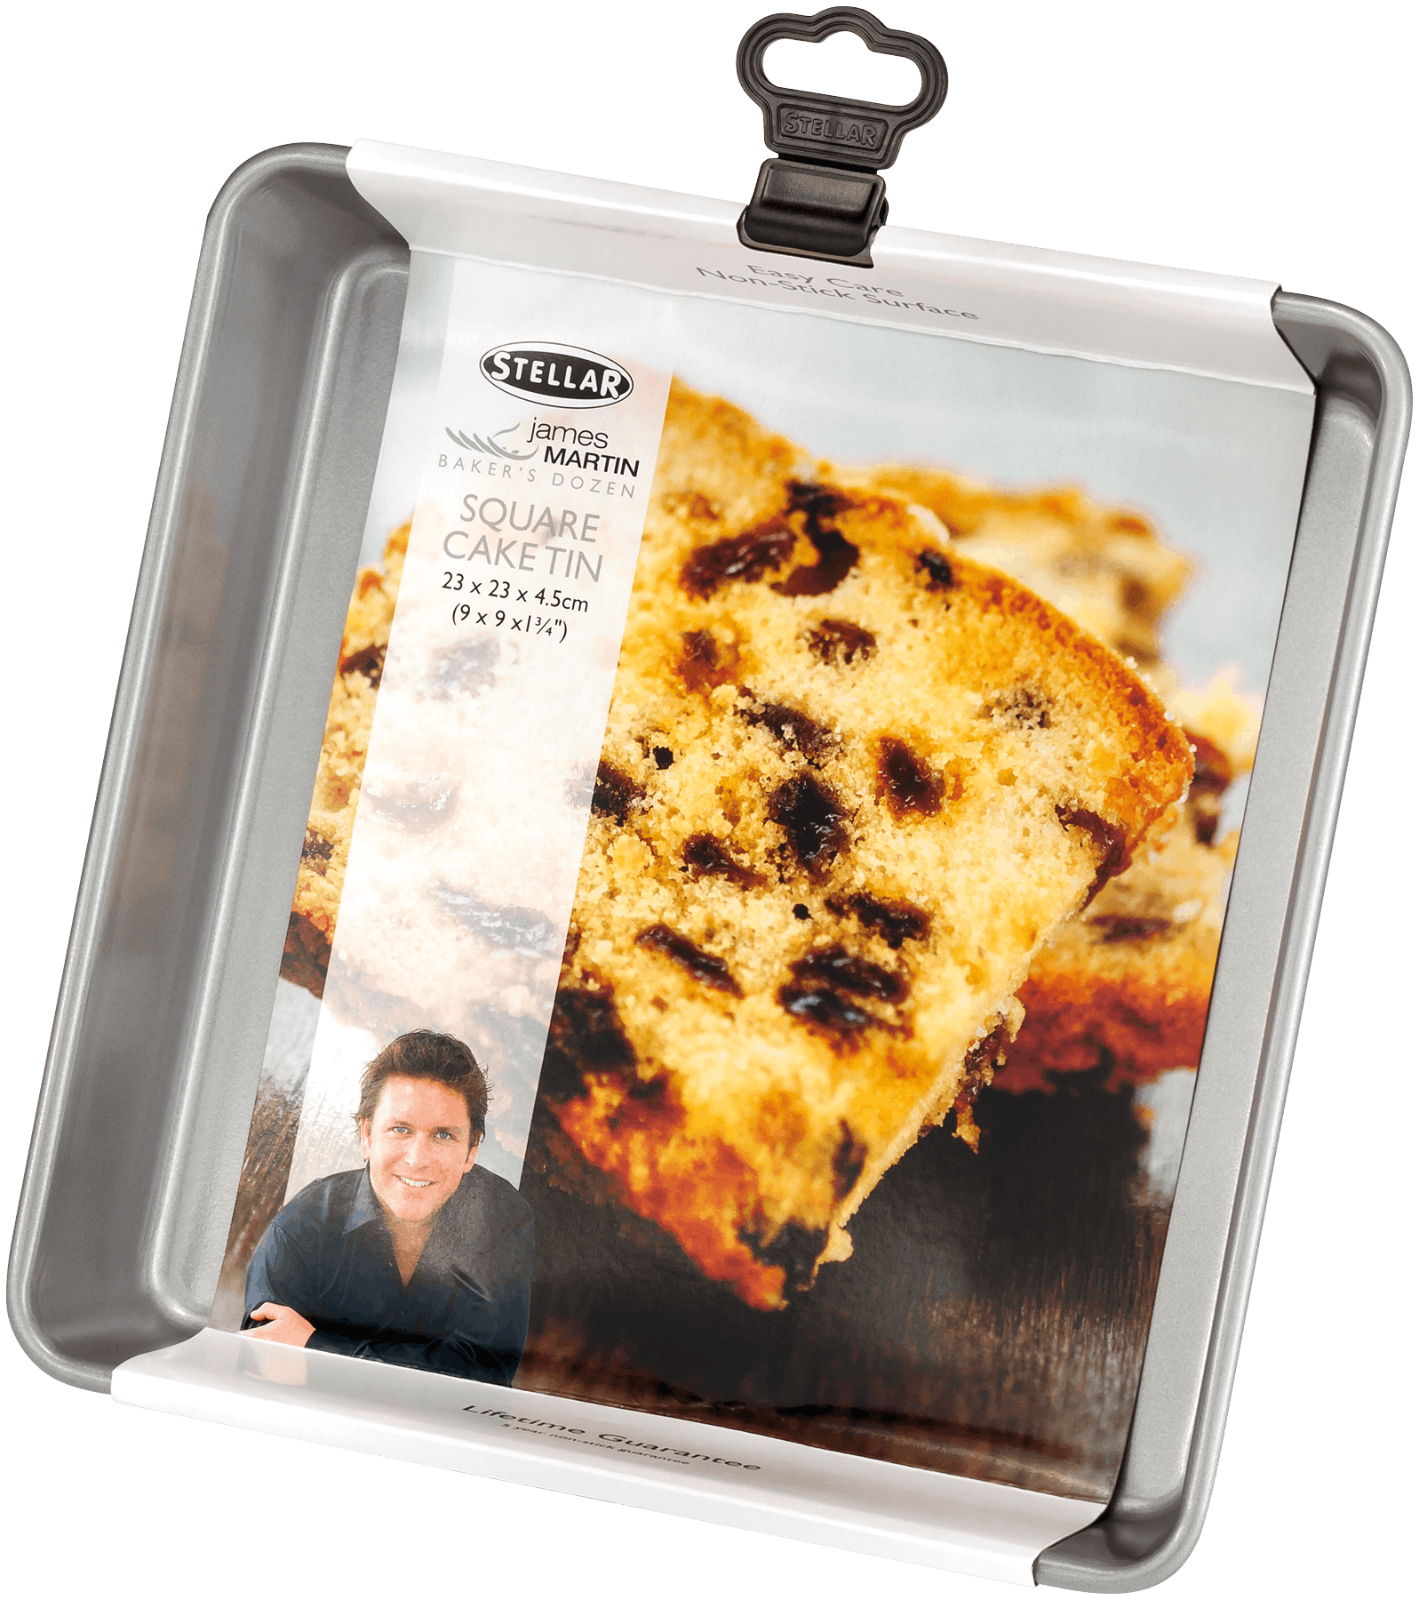 Stellar James Martin Non-Stick Square Cake Tin 23 x 23 x 4.5cm